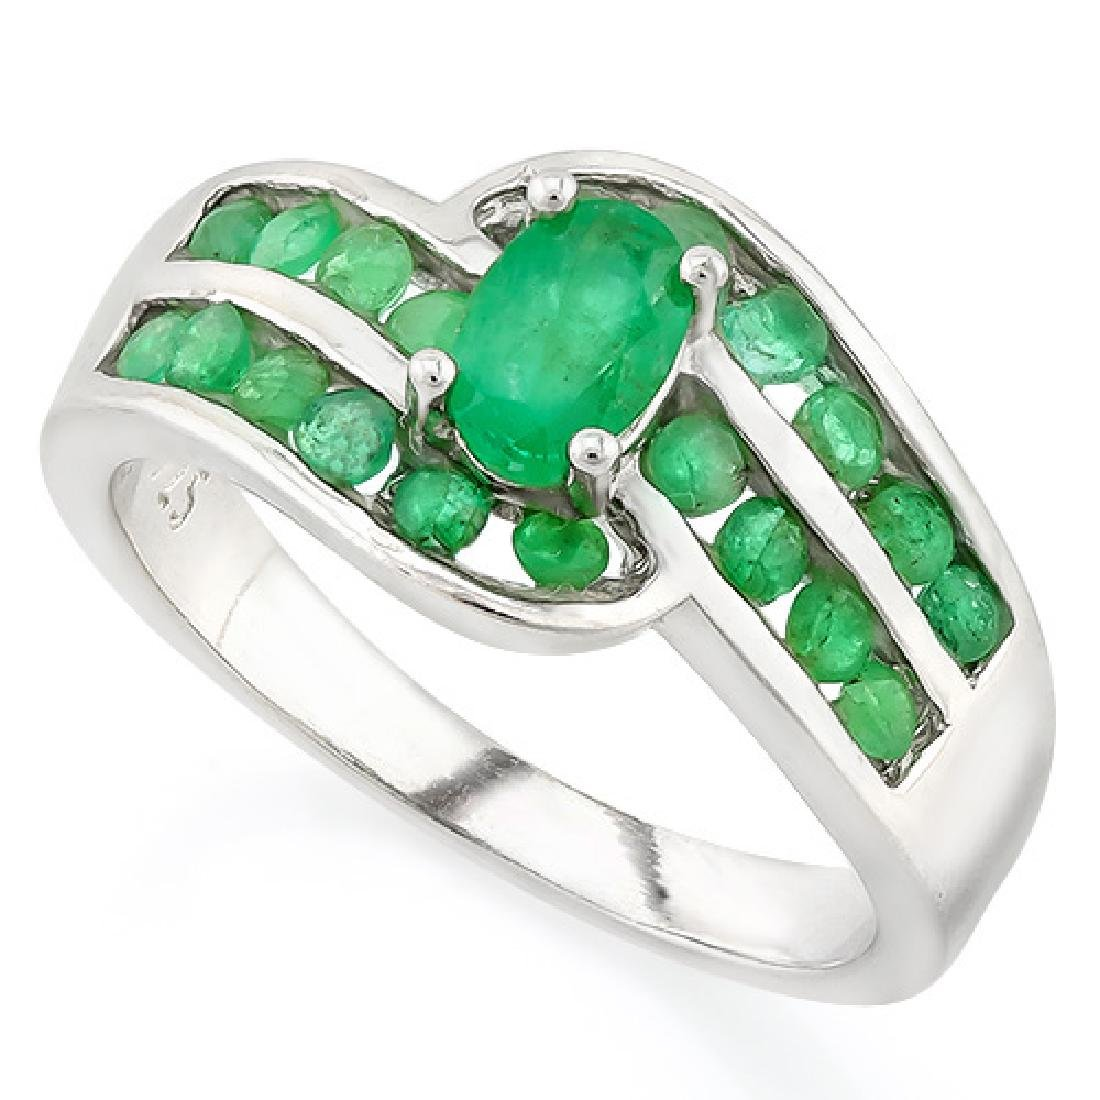 GORGEOUS GENUINE EMERALD 1CT STERLING SILVER RING